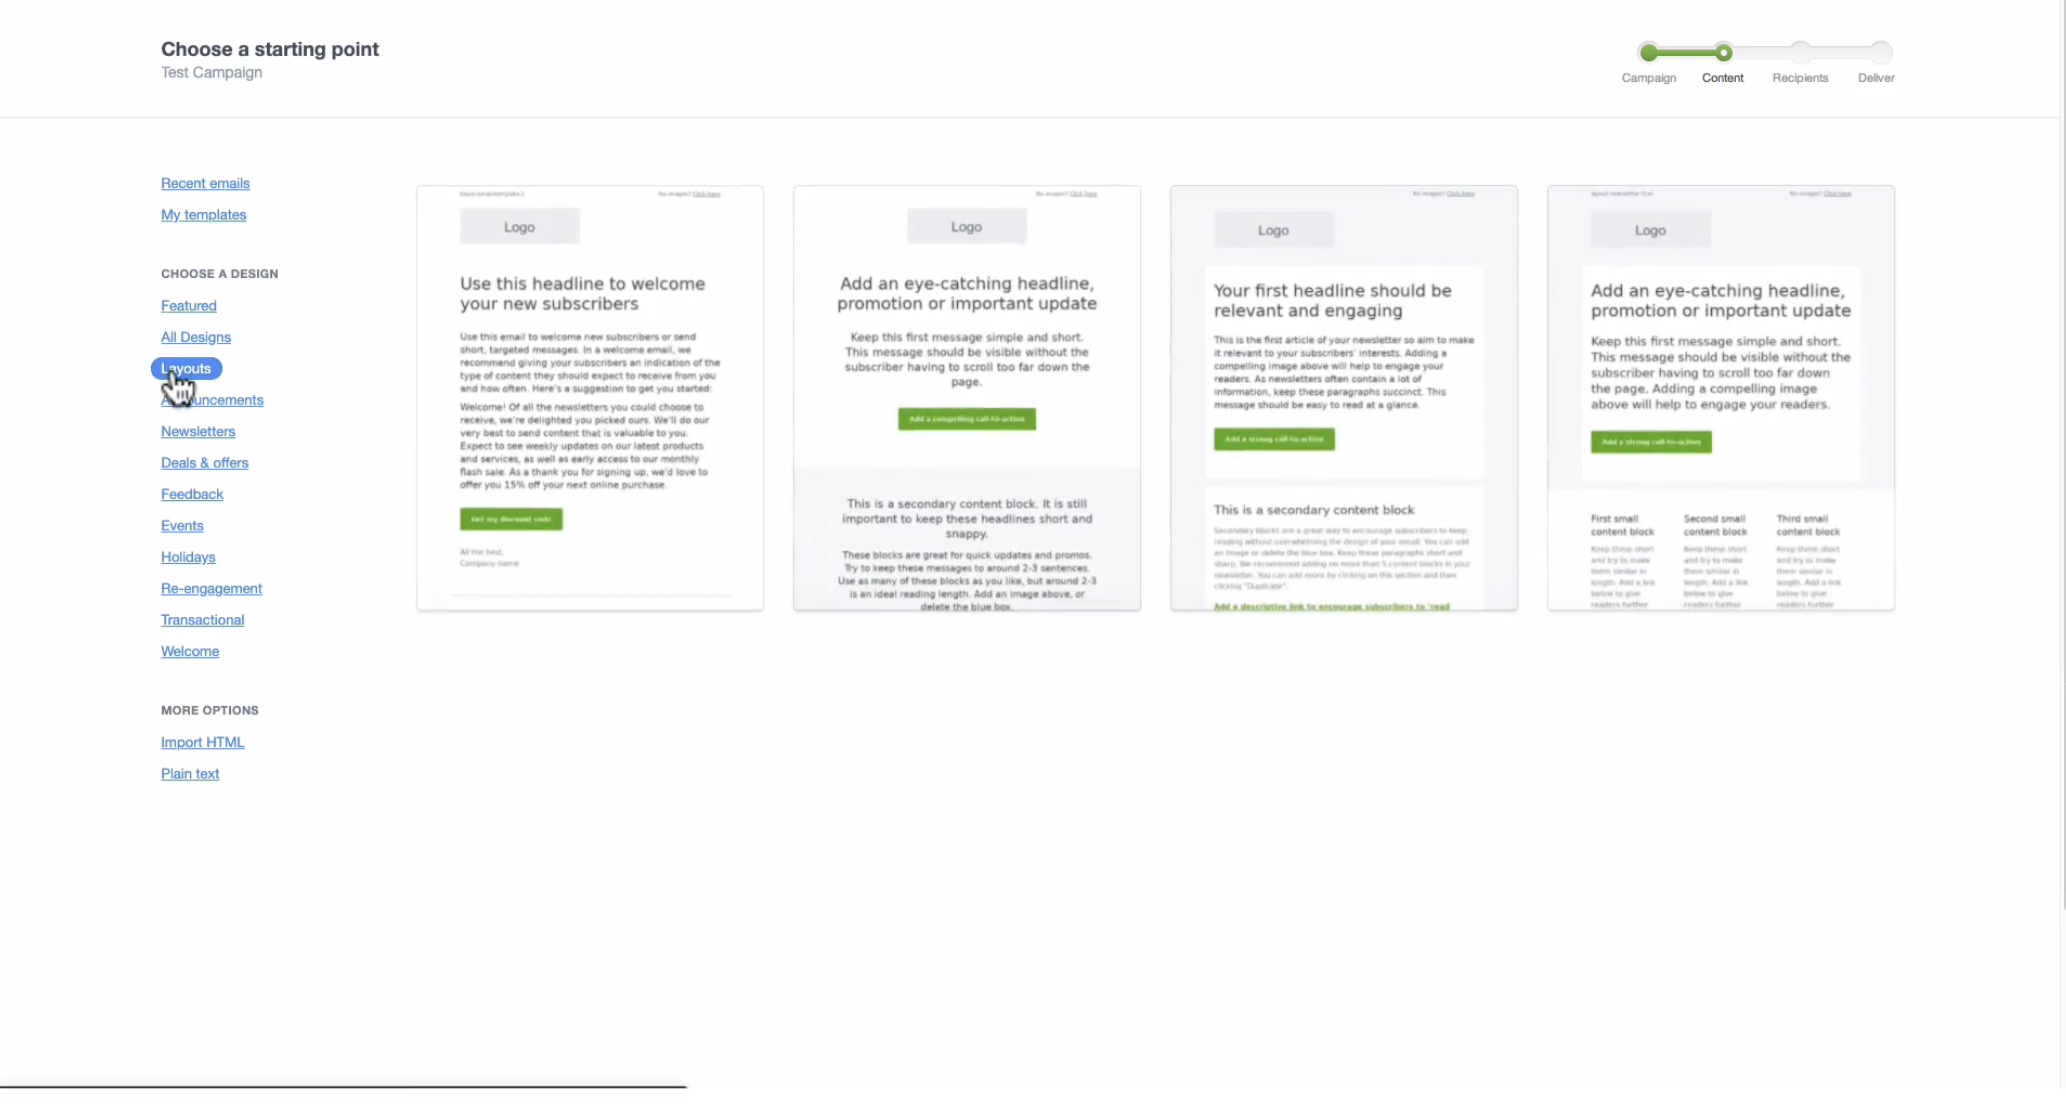 Our new layout templates make designing your own branded email even simpler